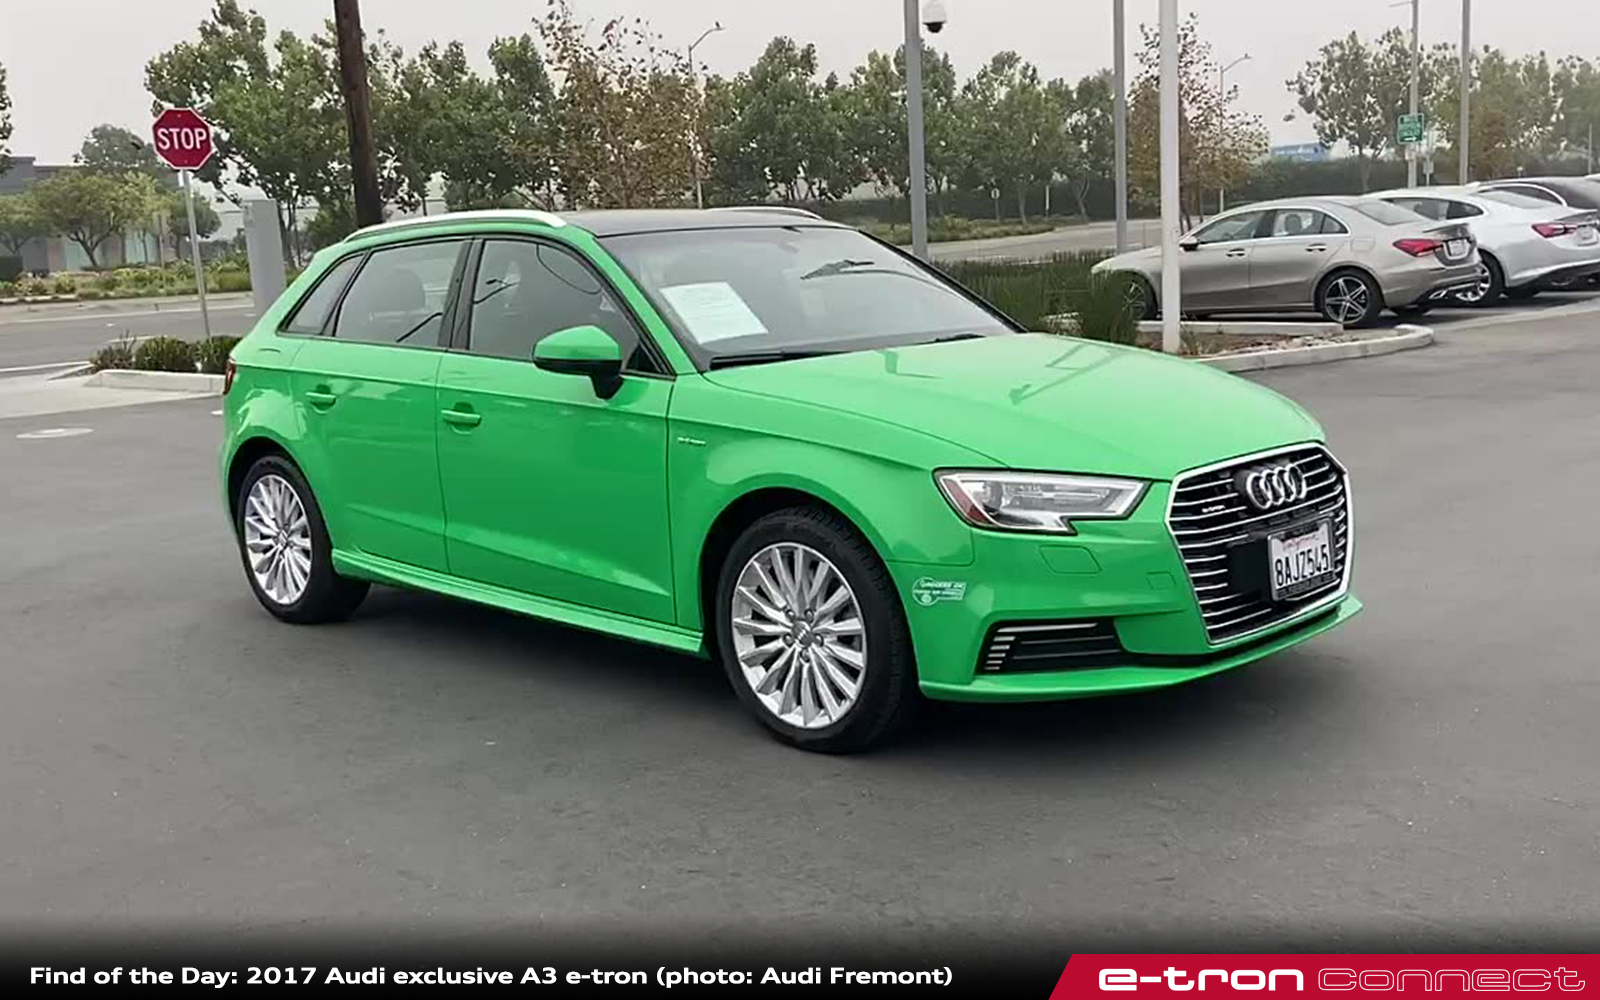 Find of the Day: 2017 Audi exclusive A3 e-tron